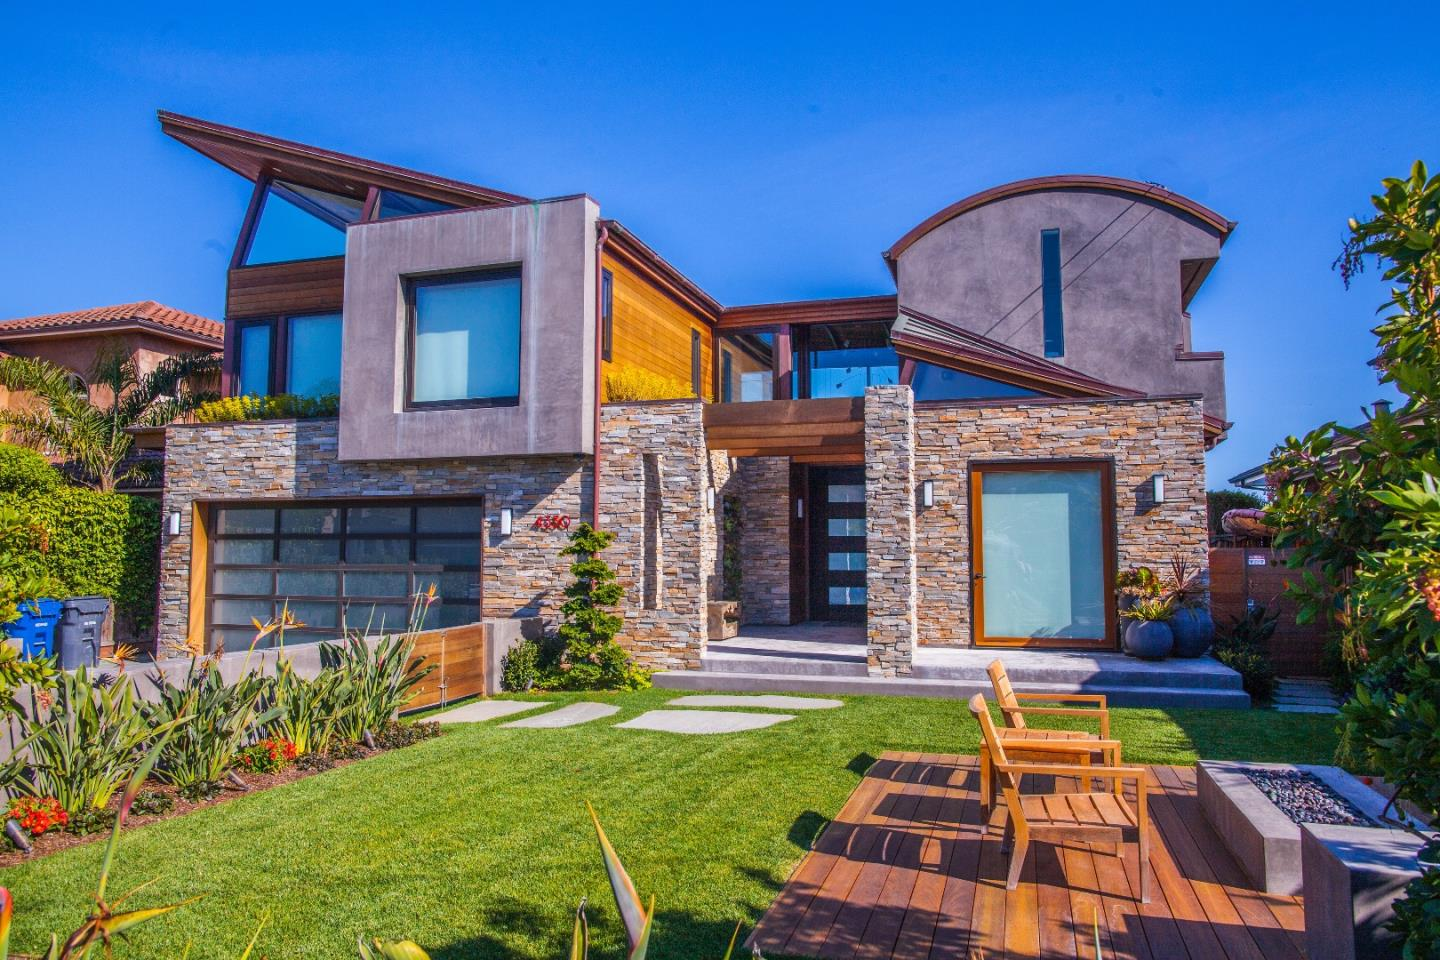 San francisco homes neighborhoods architecture and real for Luxurious houses for sale